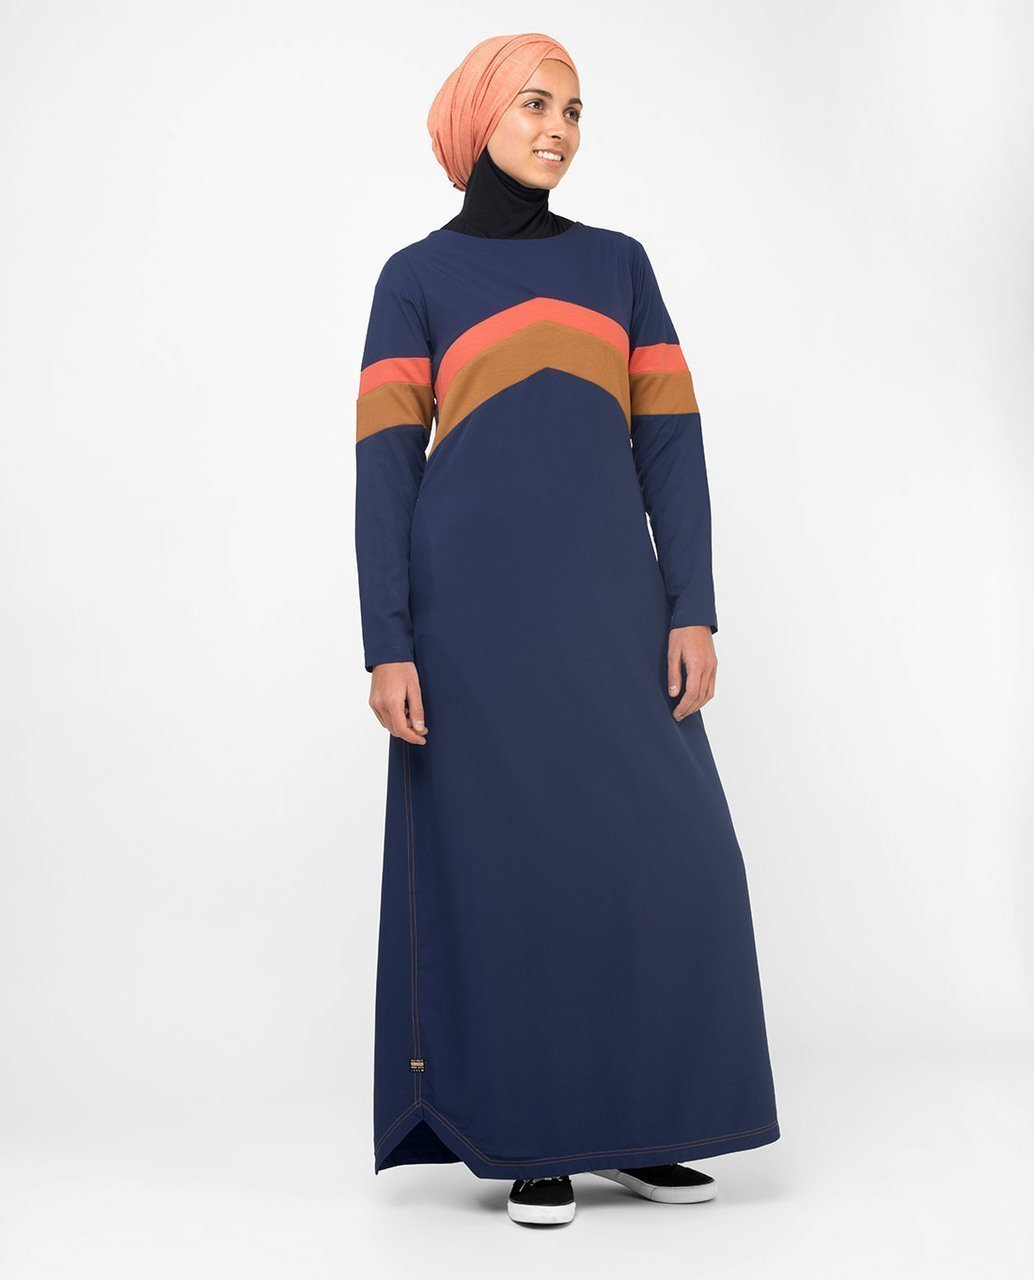 Active Orange Highlight Retro Abaya Jilbab S 54 Navy